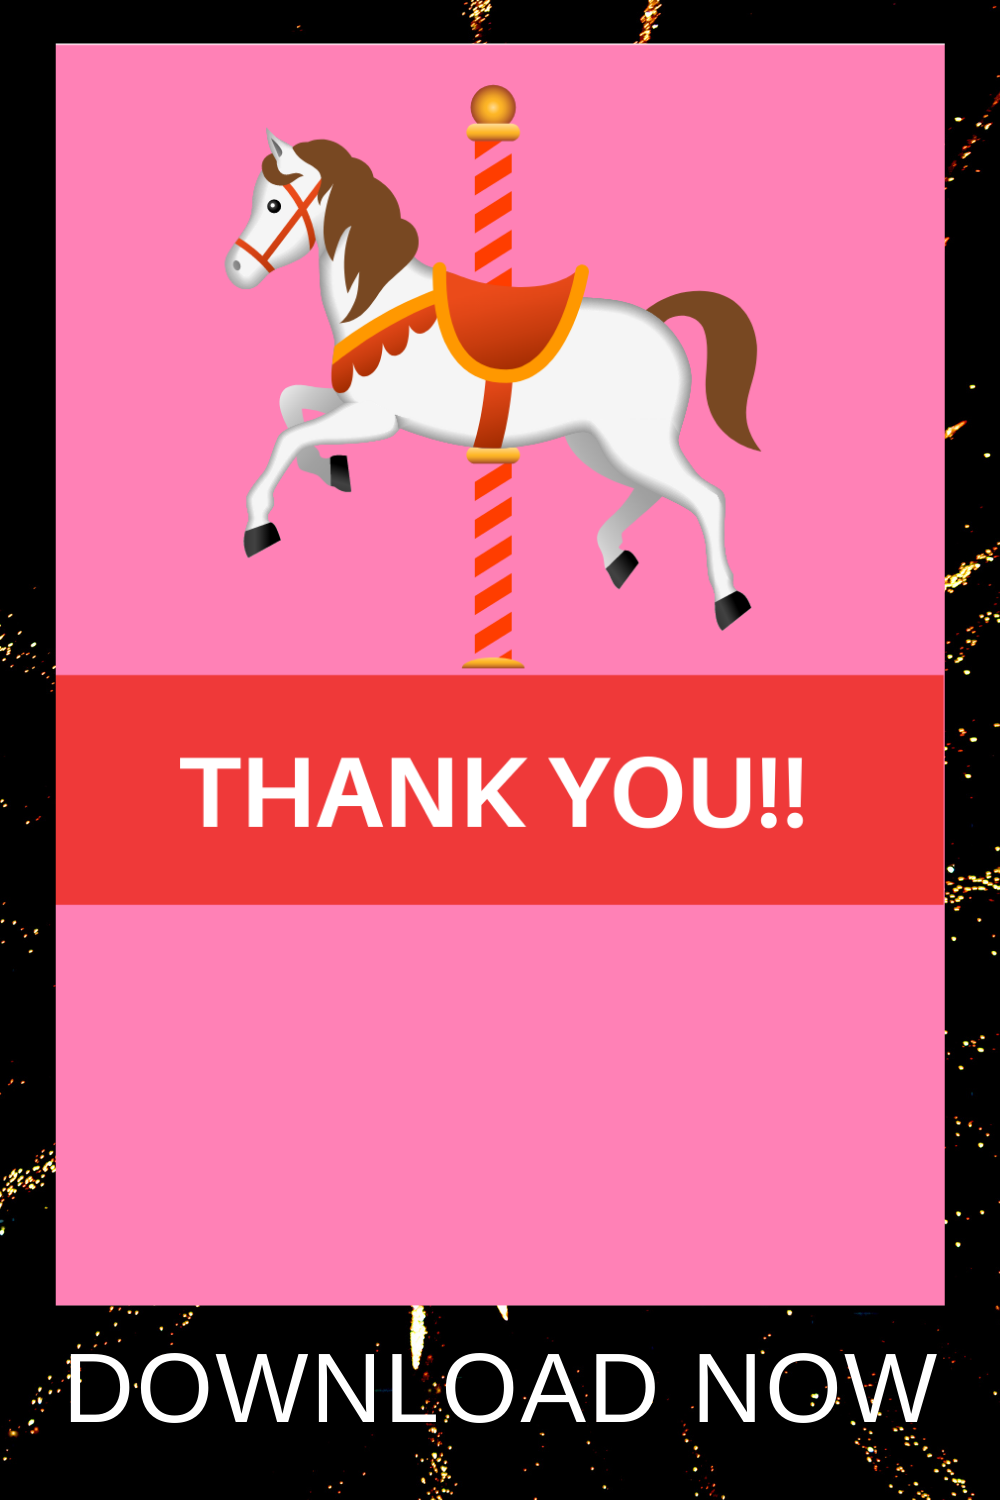 carousel thank you note for a carousel themed 1st birthday party